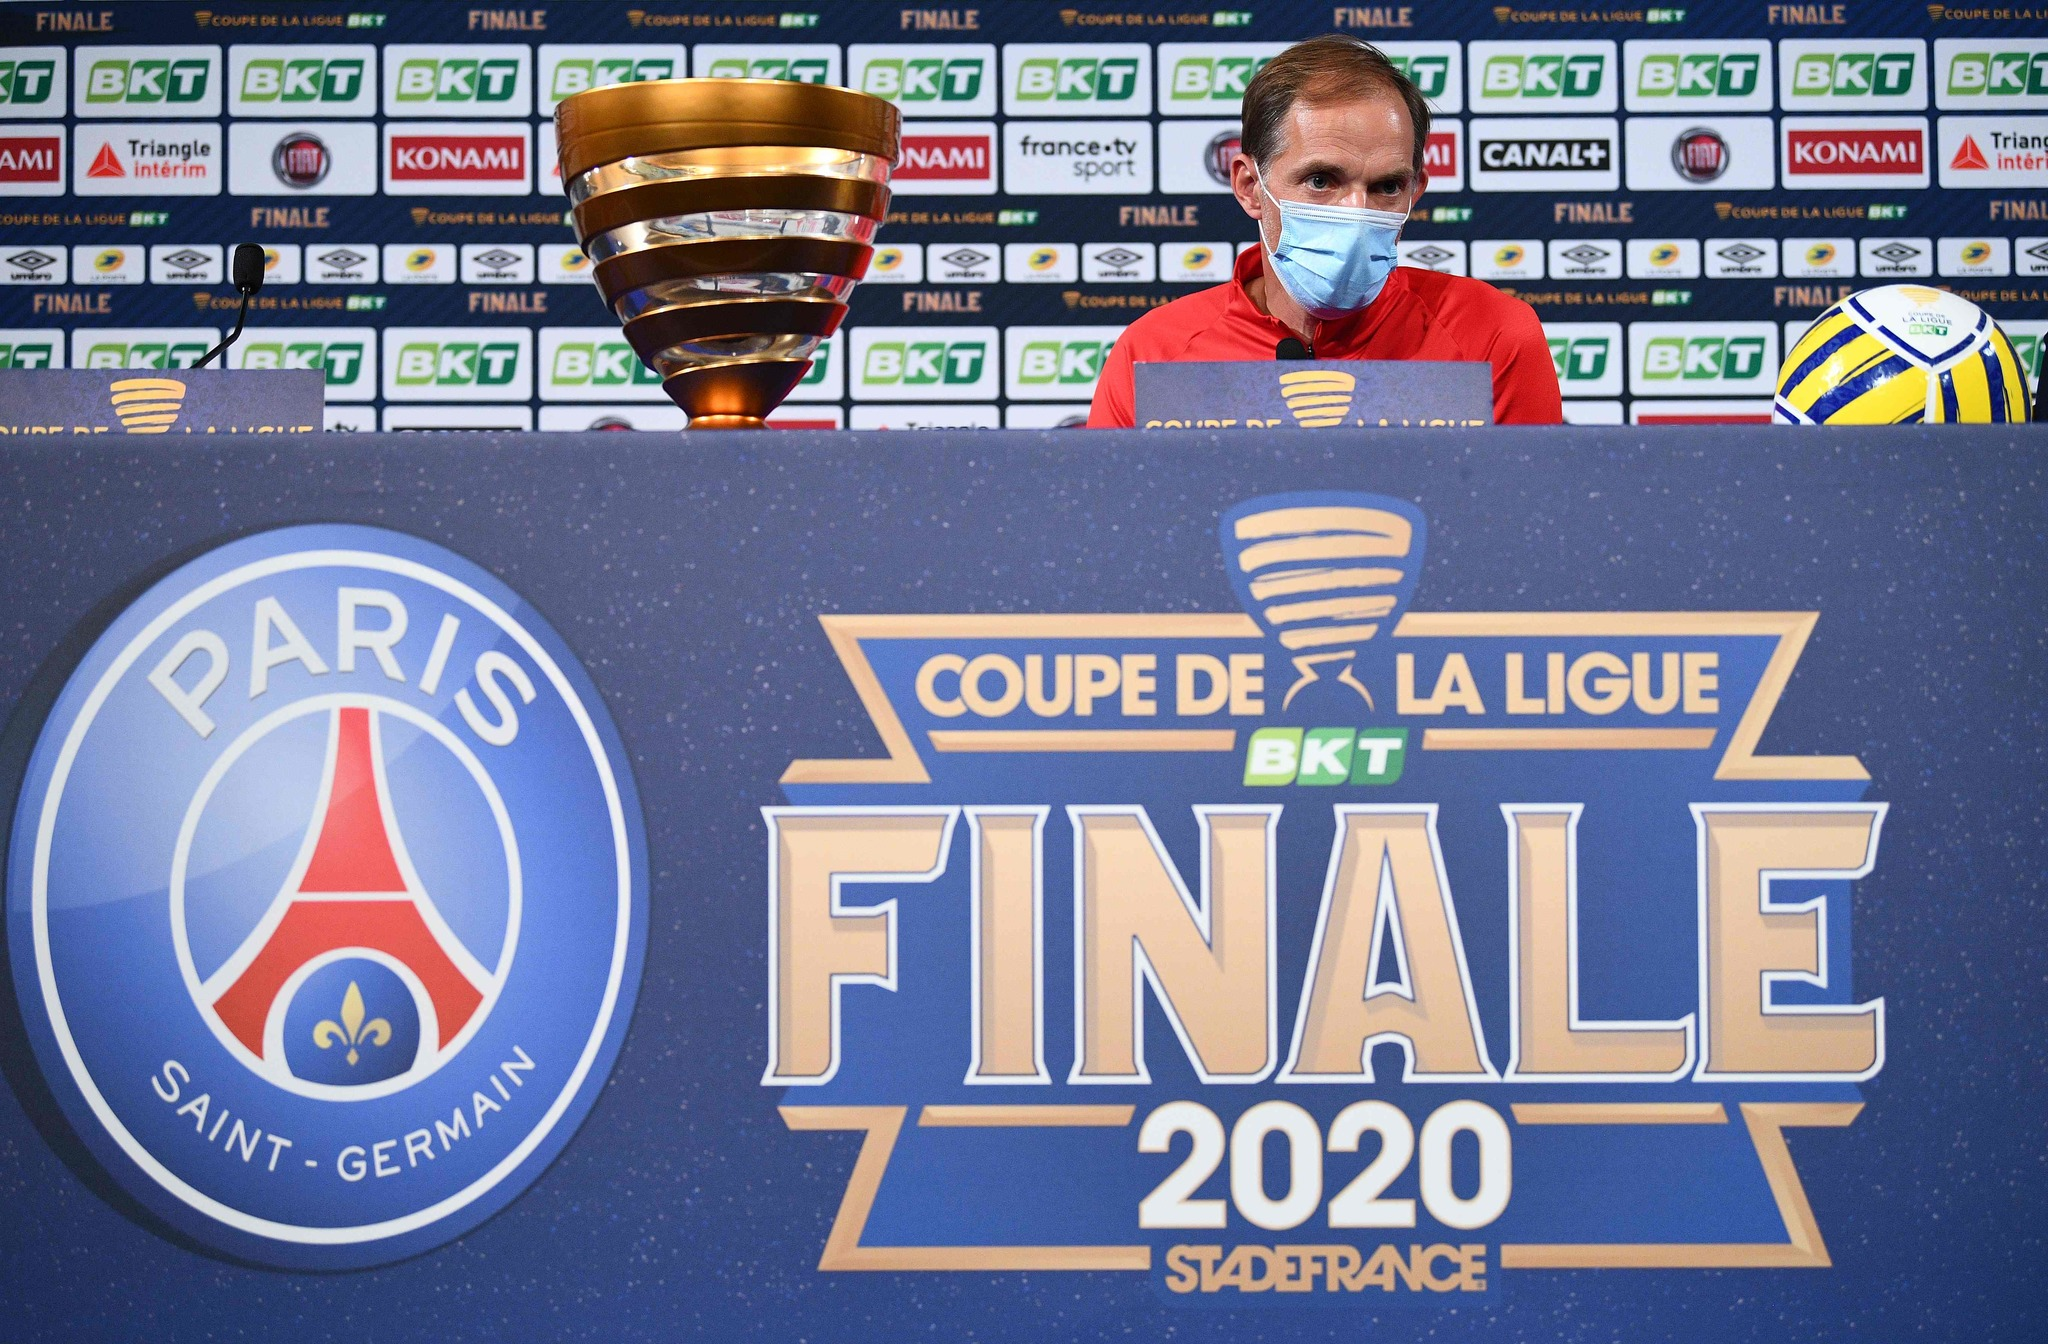 PSG complete domestic treble with League Cup triumph